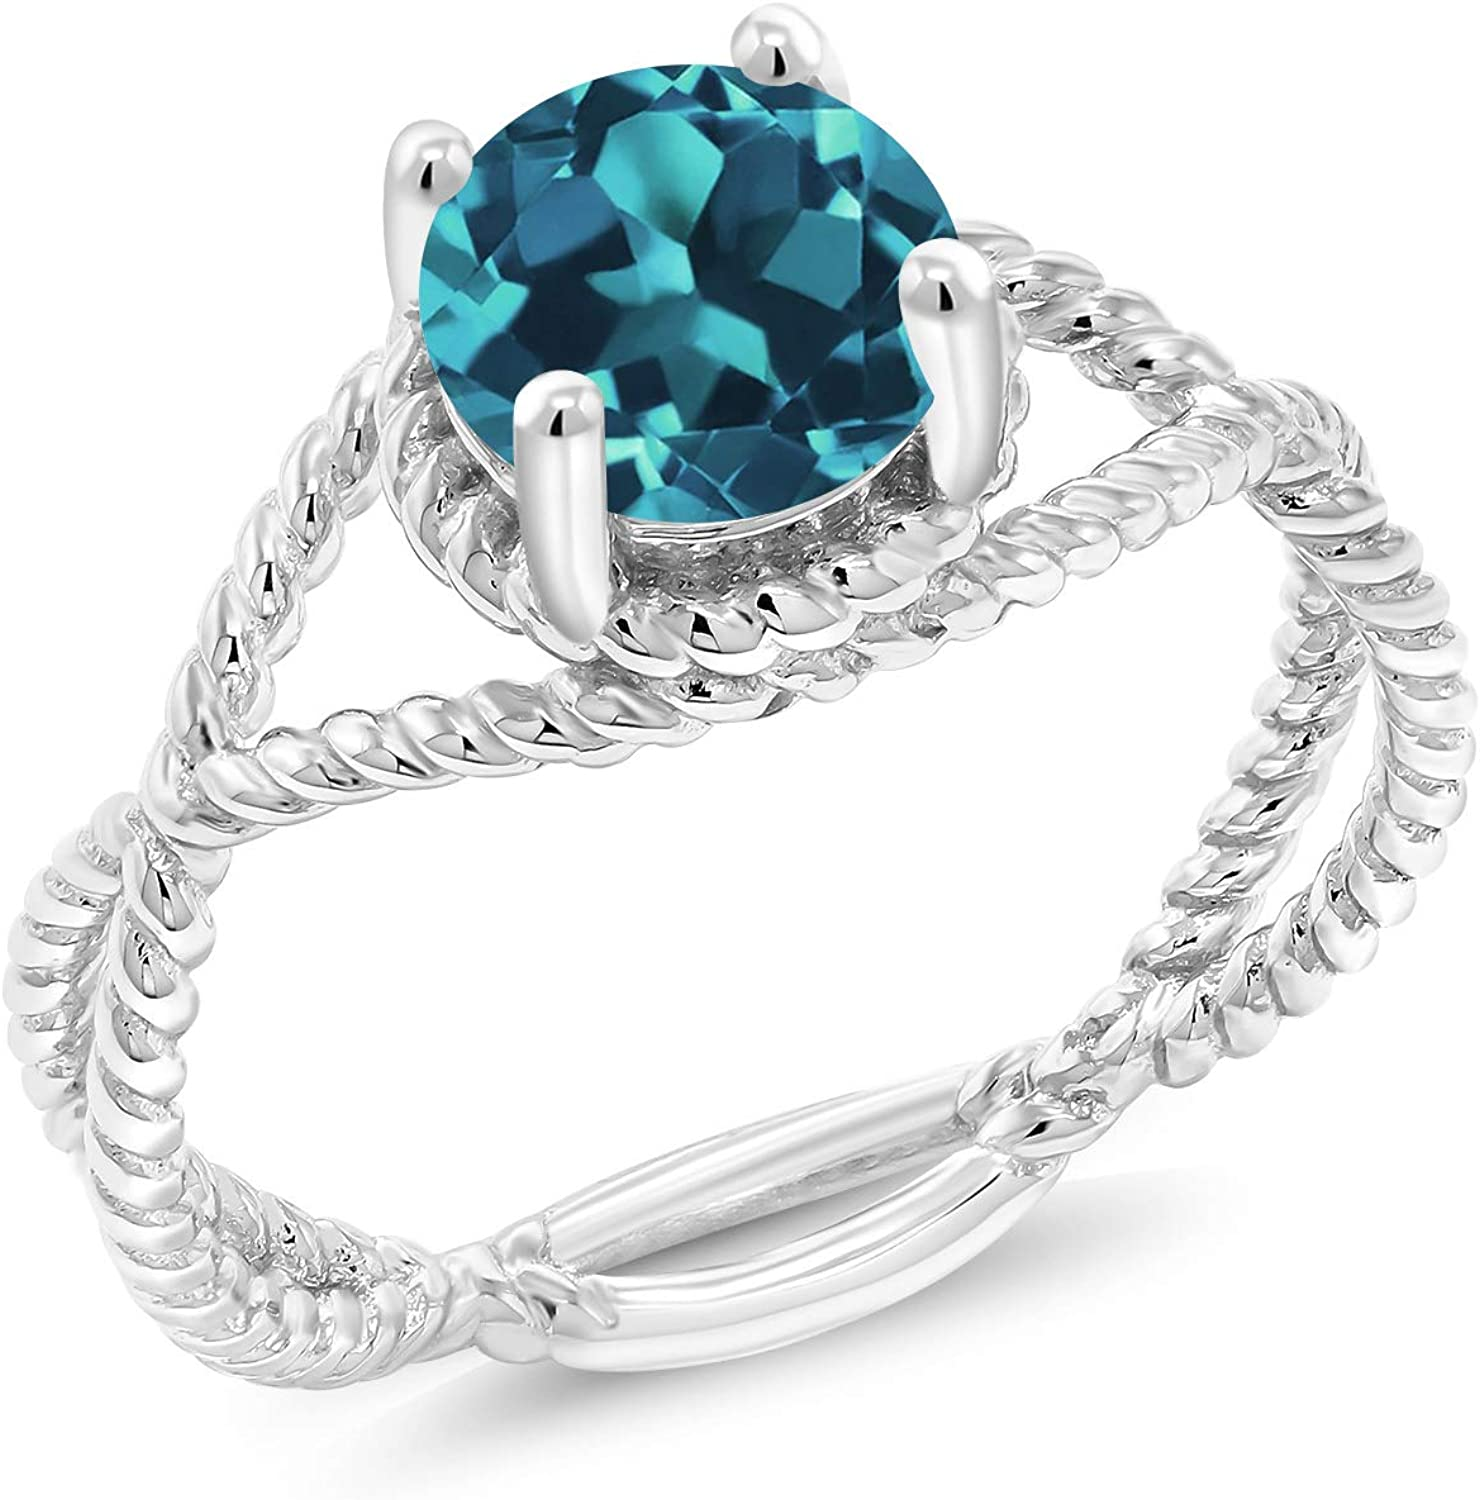 OFFicial mail order Gem Stone King 925 Sterling Silver Ring London Women Topaz Portland Mall Blue